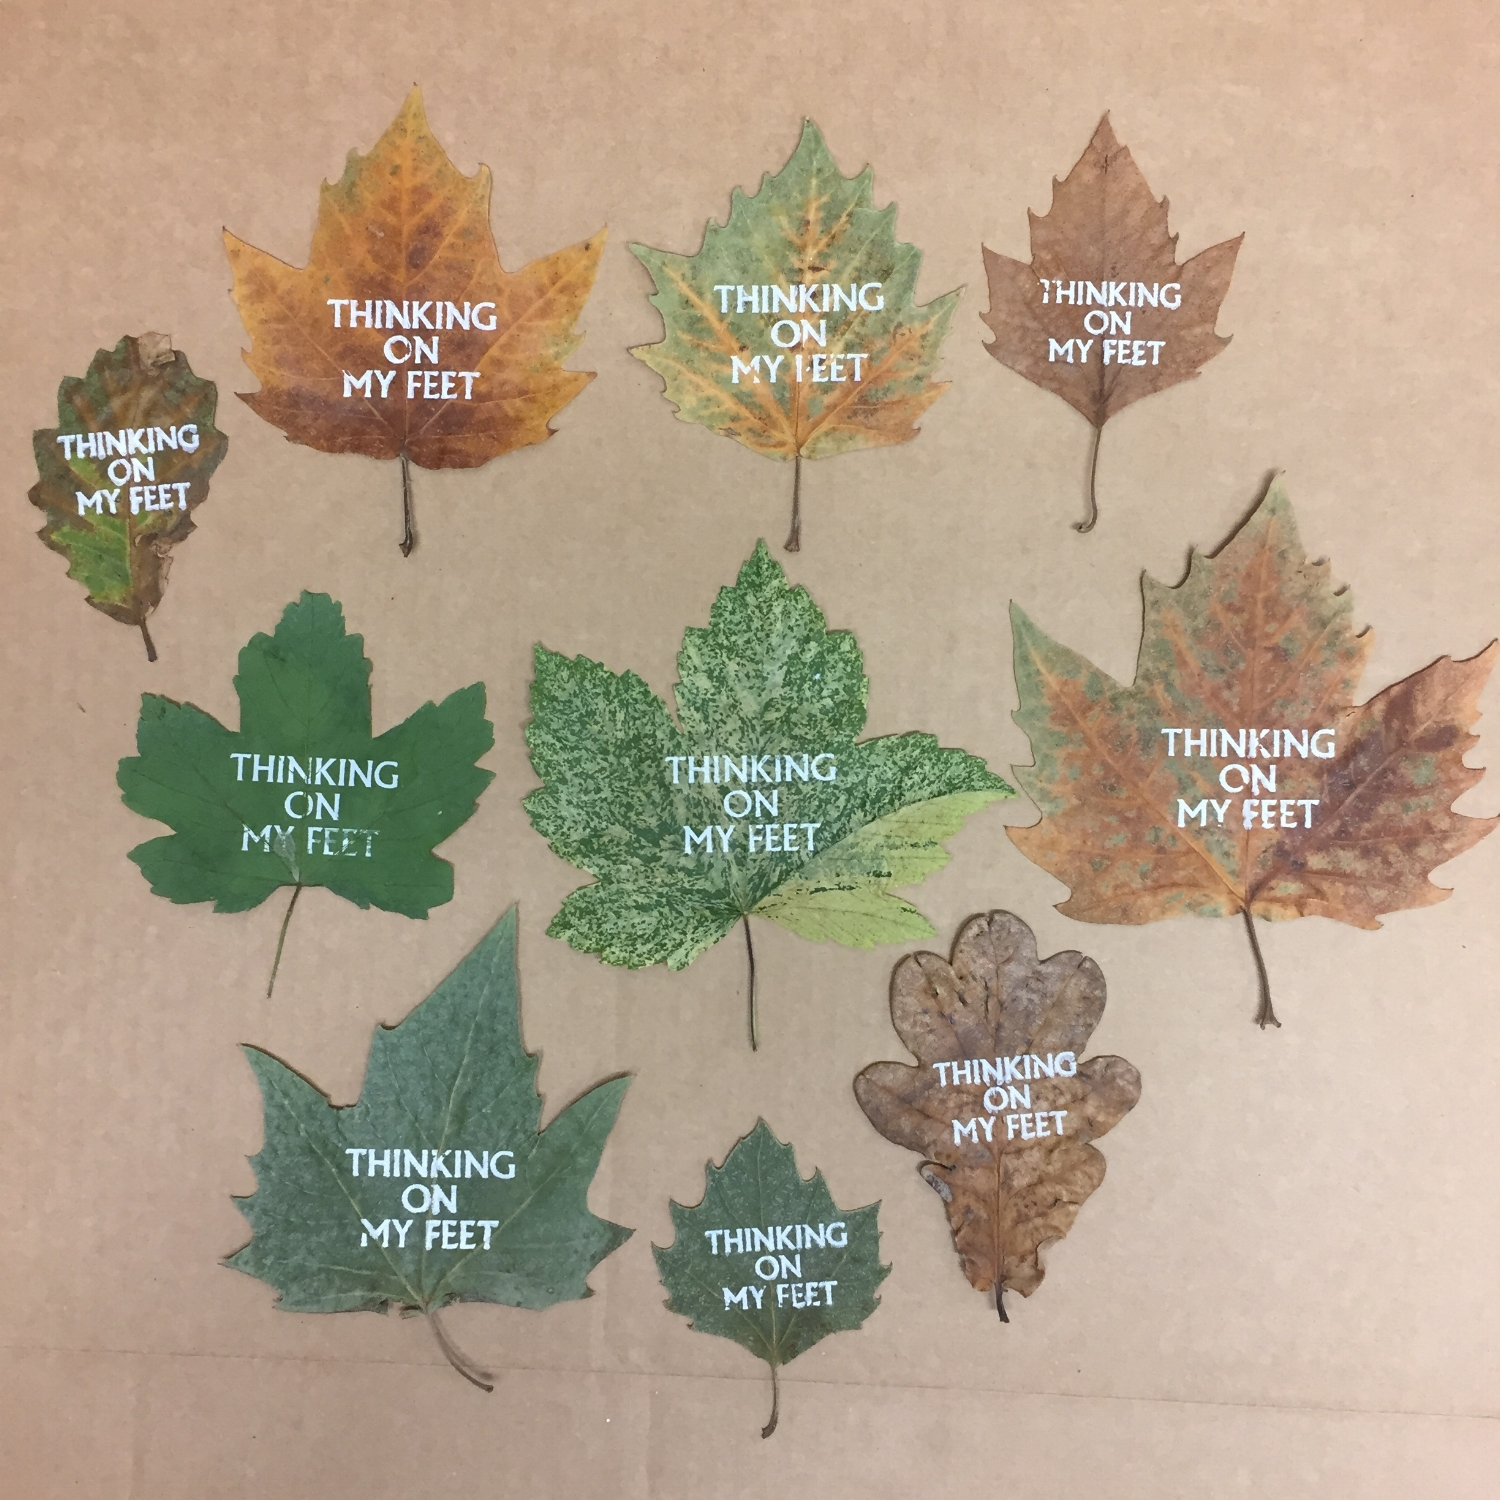 Screen printing on a variety of leaves (chosen cover leaf is top middle)